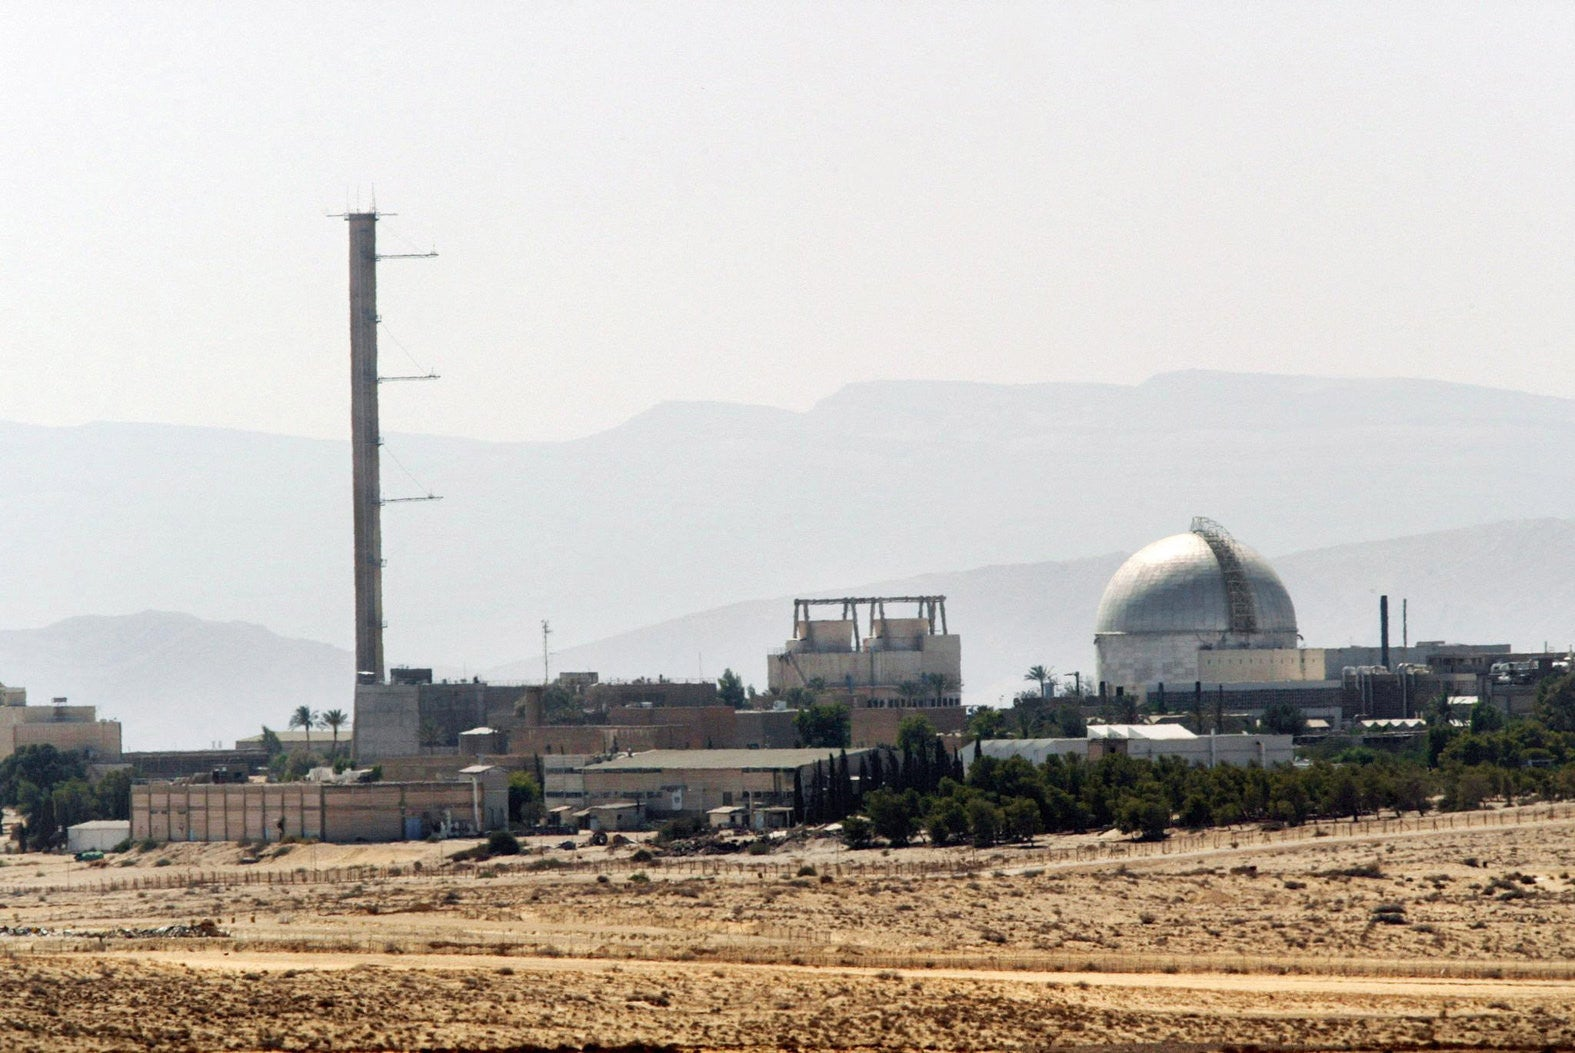 A partial view of the Dimona nuclear power plant in Israel's Negev desert, September 2002.